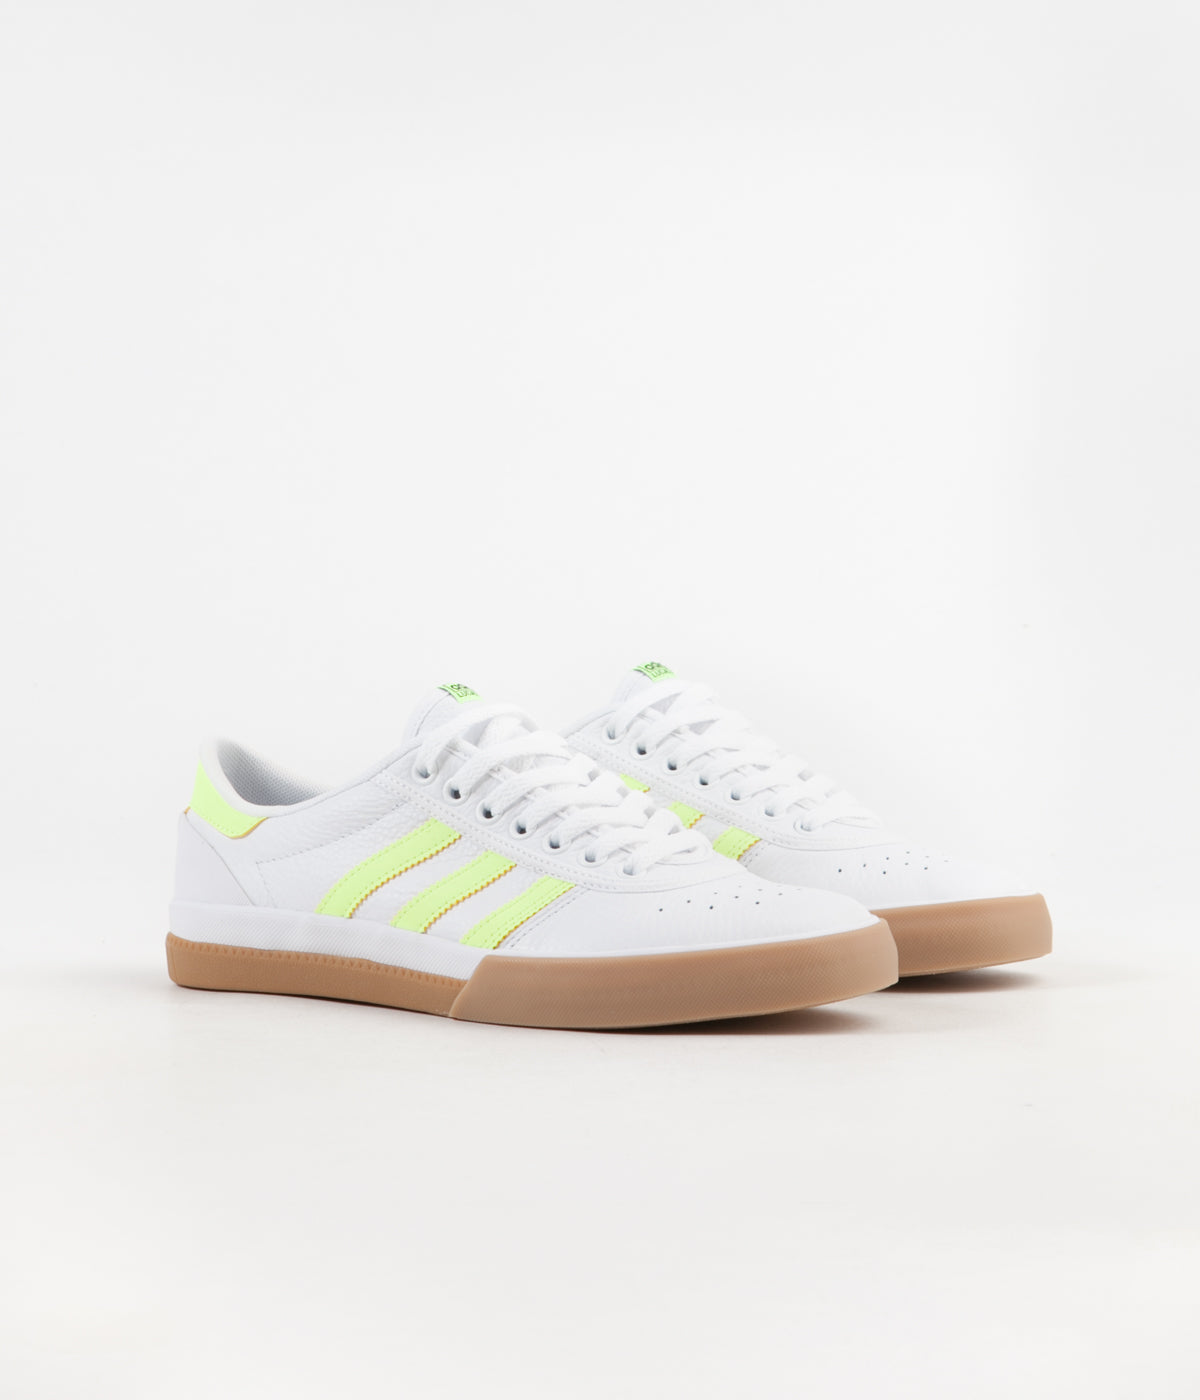 Adidas Lucas Premiere Shoes - White / Hi-Res Yellow / Gum